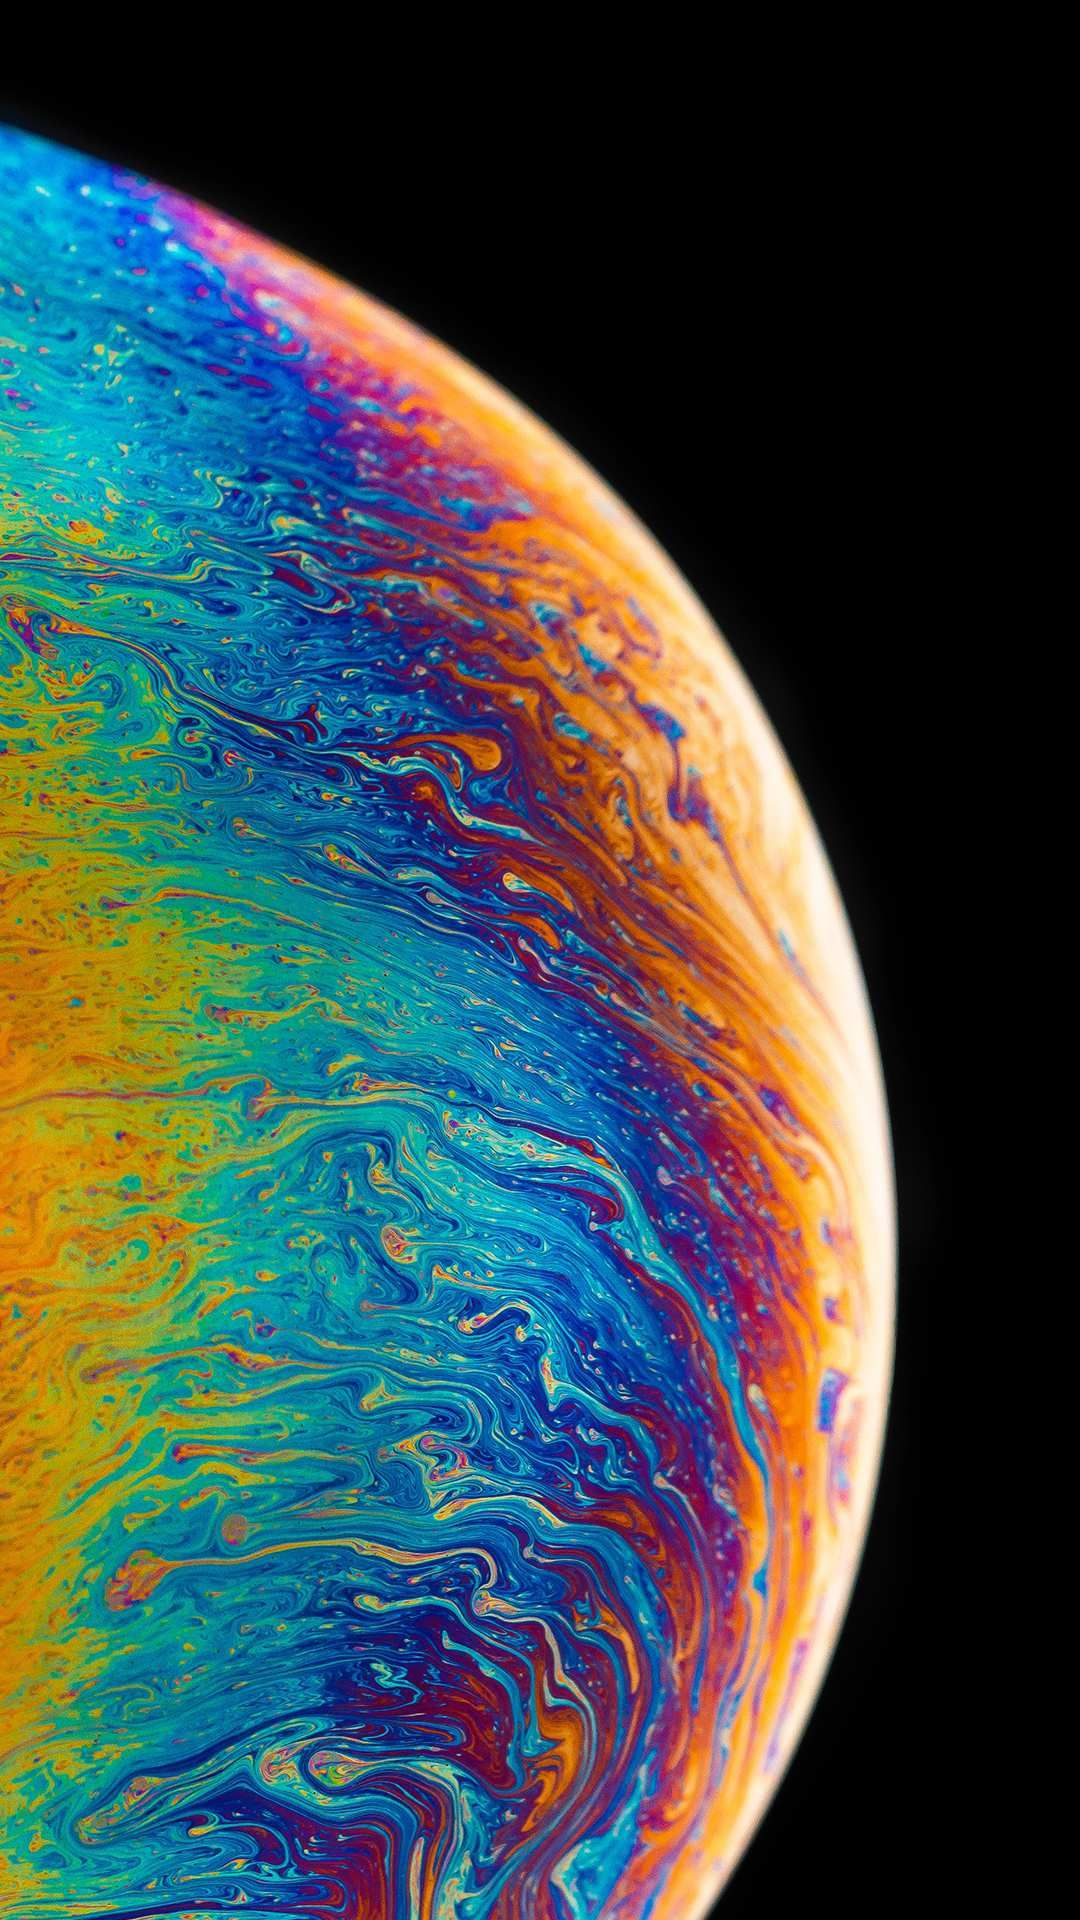 List of Great Wallpaper for iPhone SE 2019